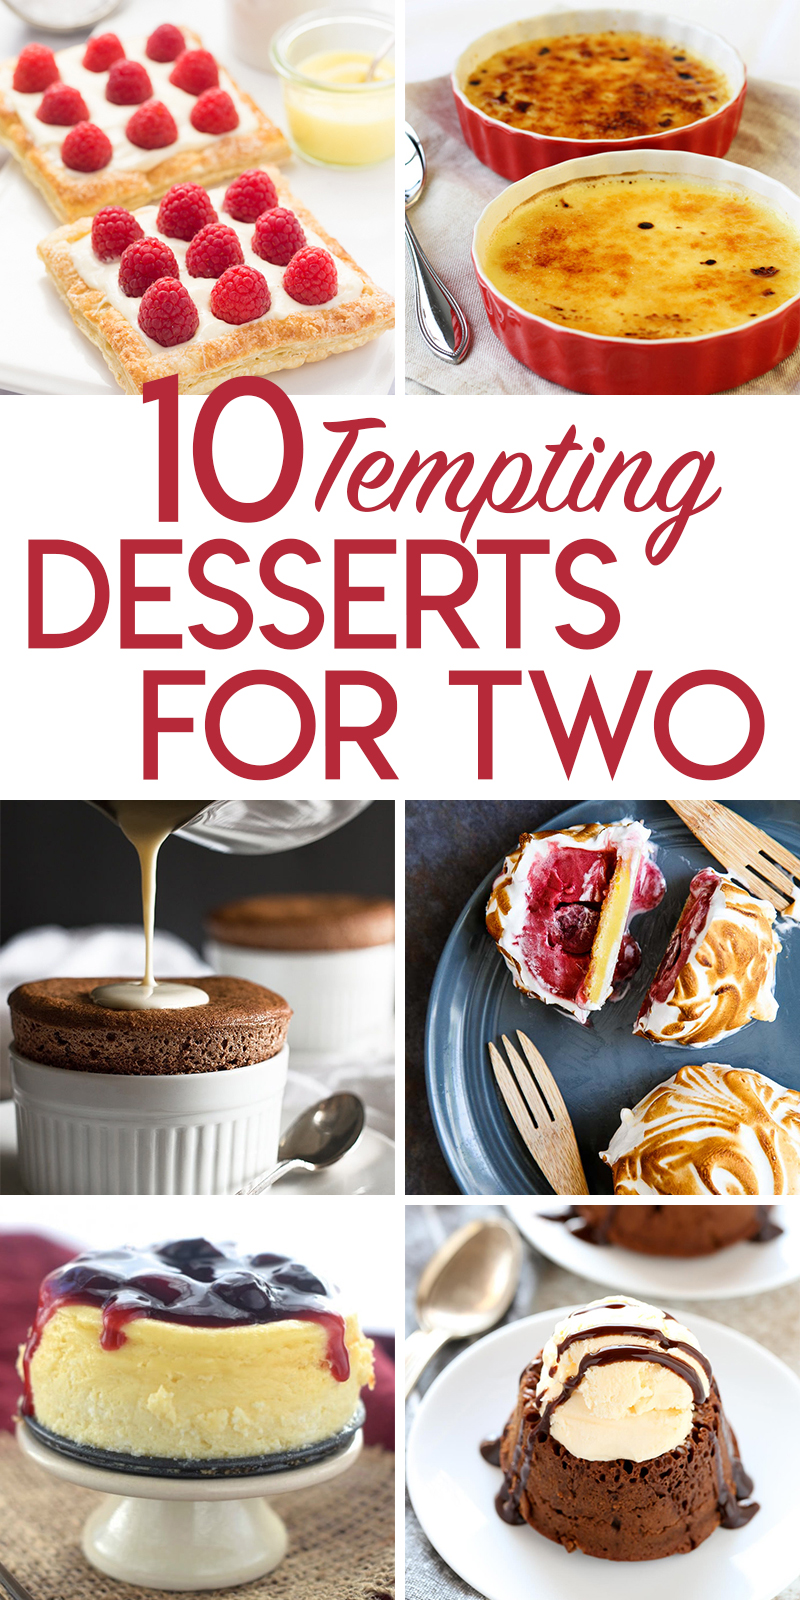 Recipes for 10 Tempting Desserts for Two